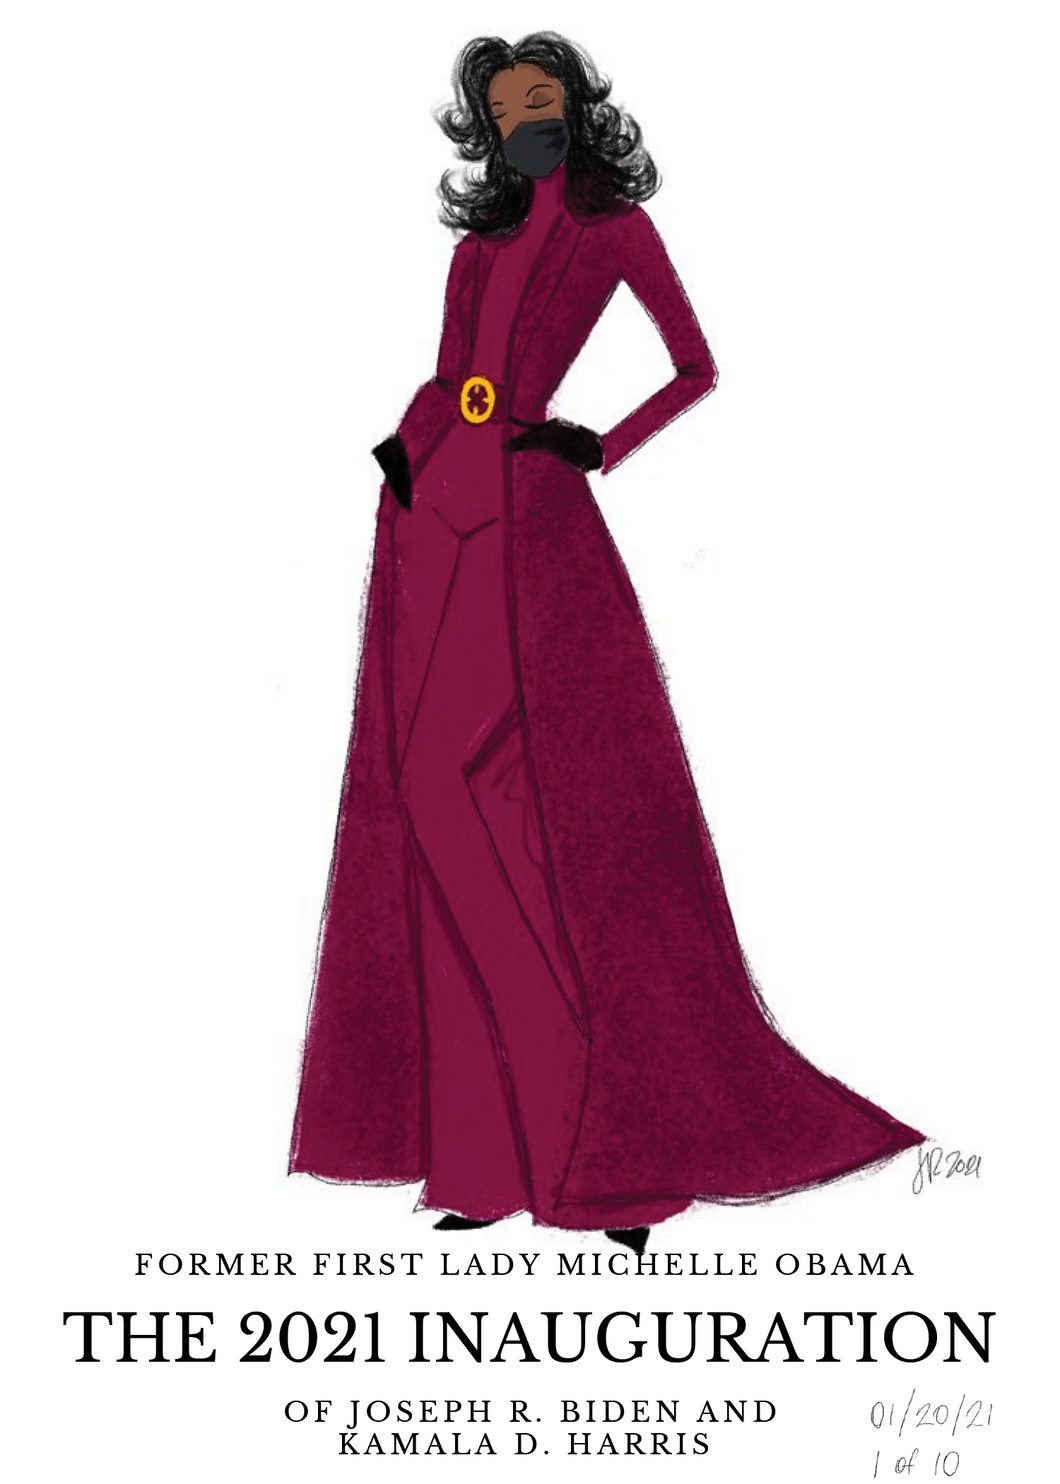 Michelle Obama 2021 Inauguration Illustration Print